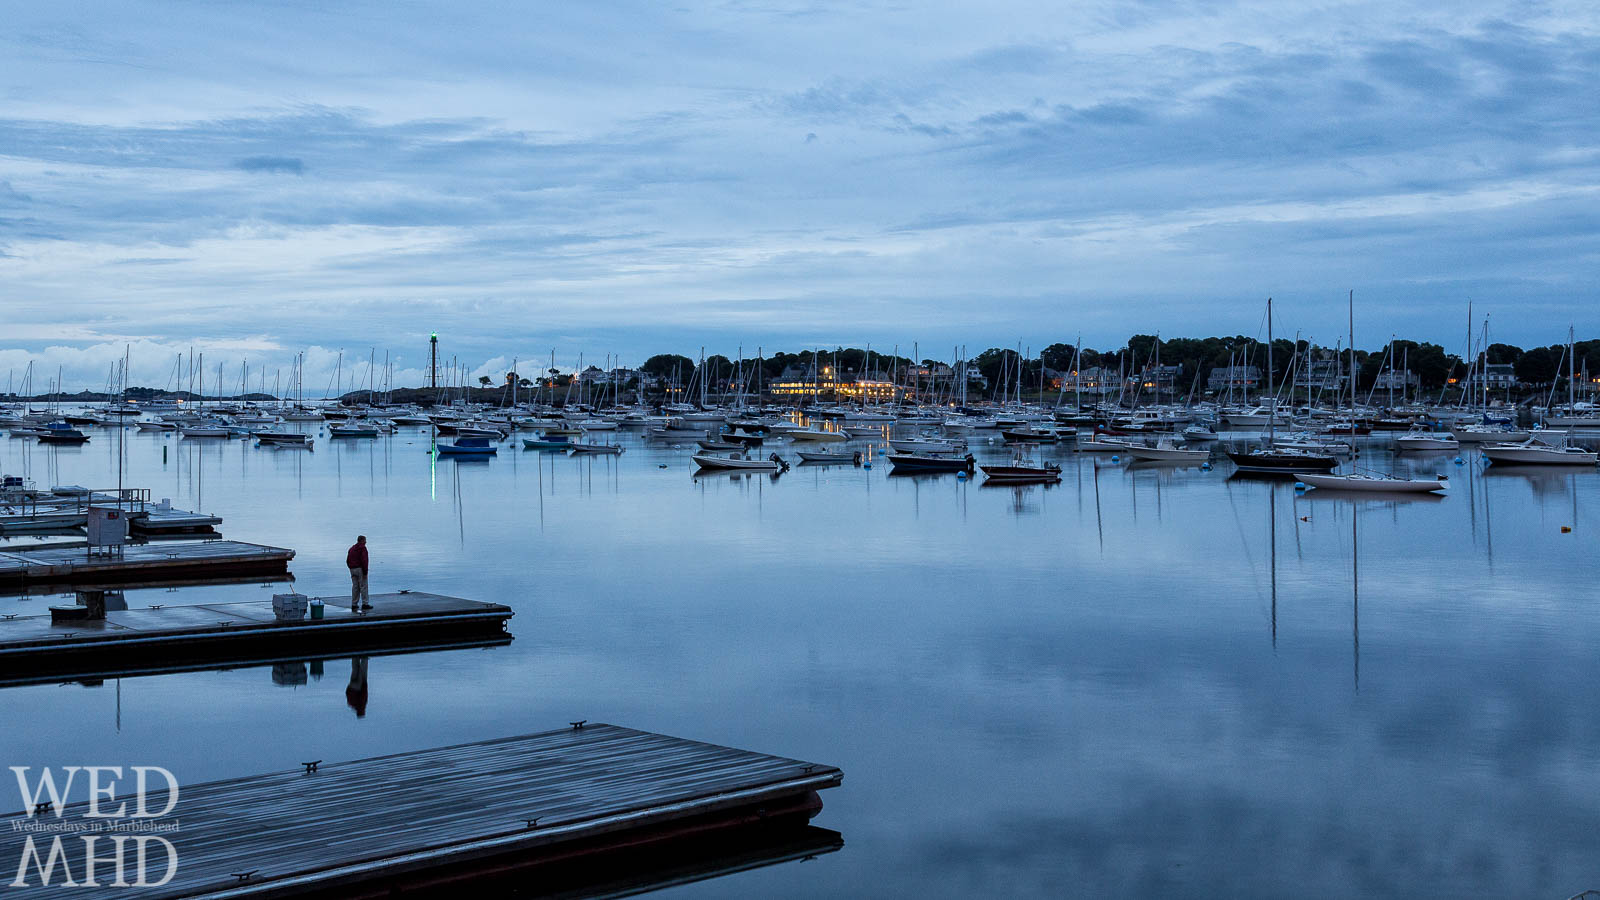 Waiting for a Ride in Marblehead Harbor